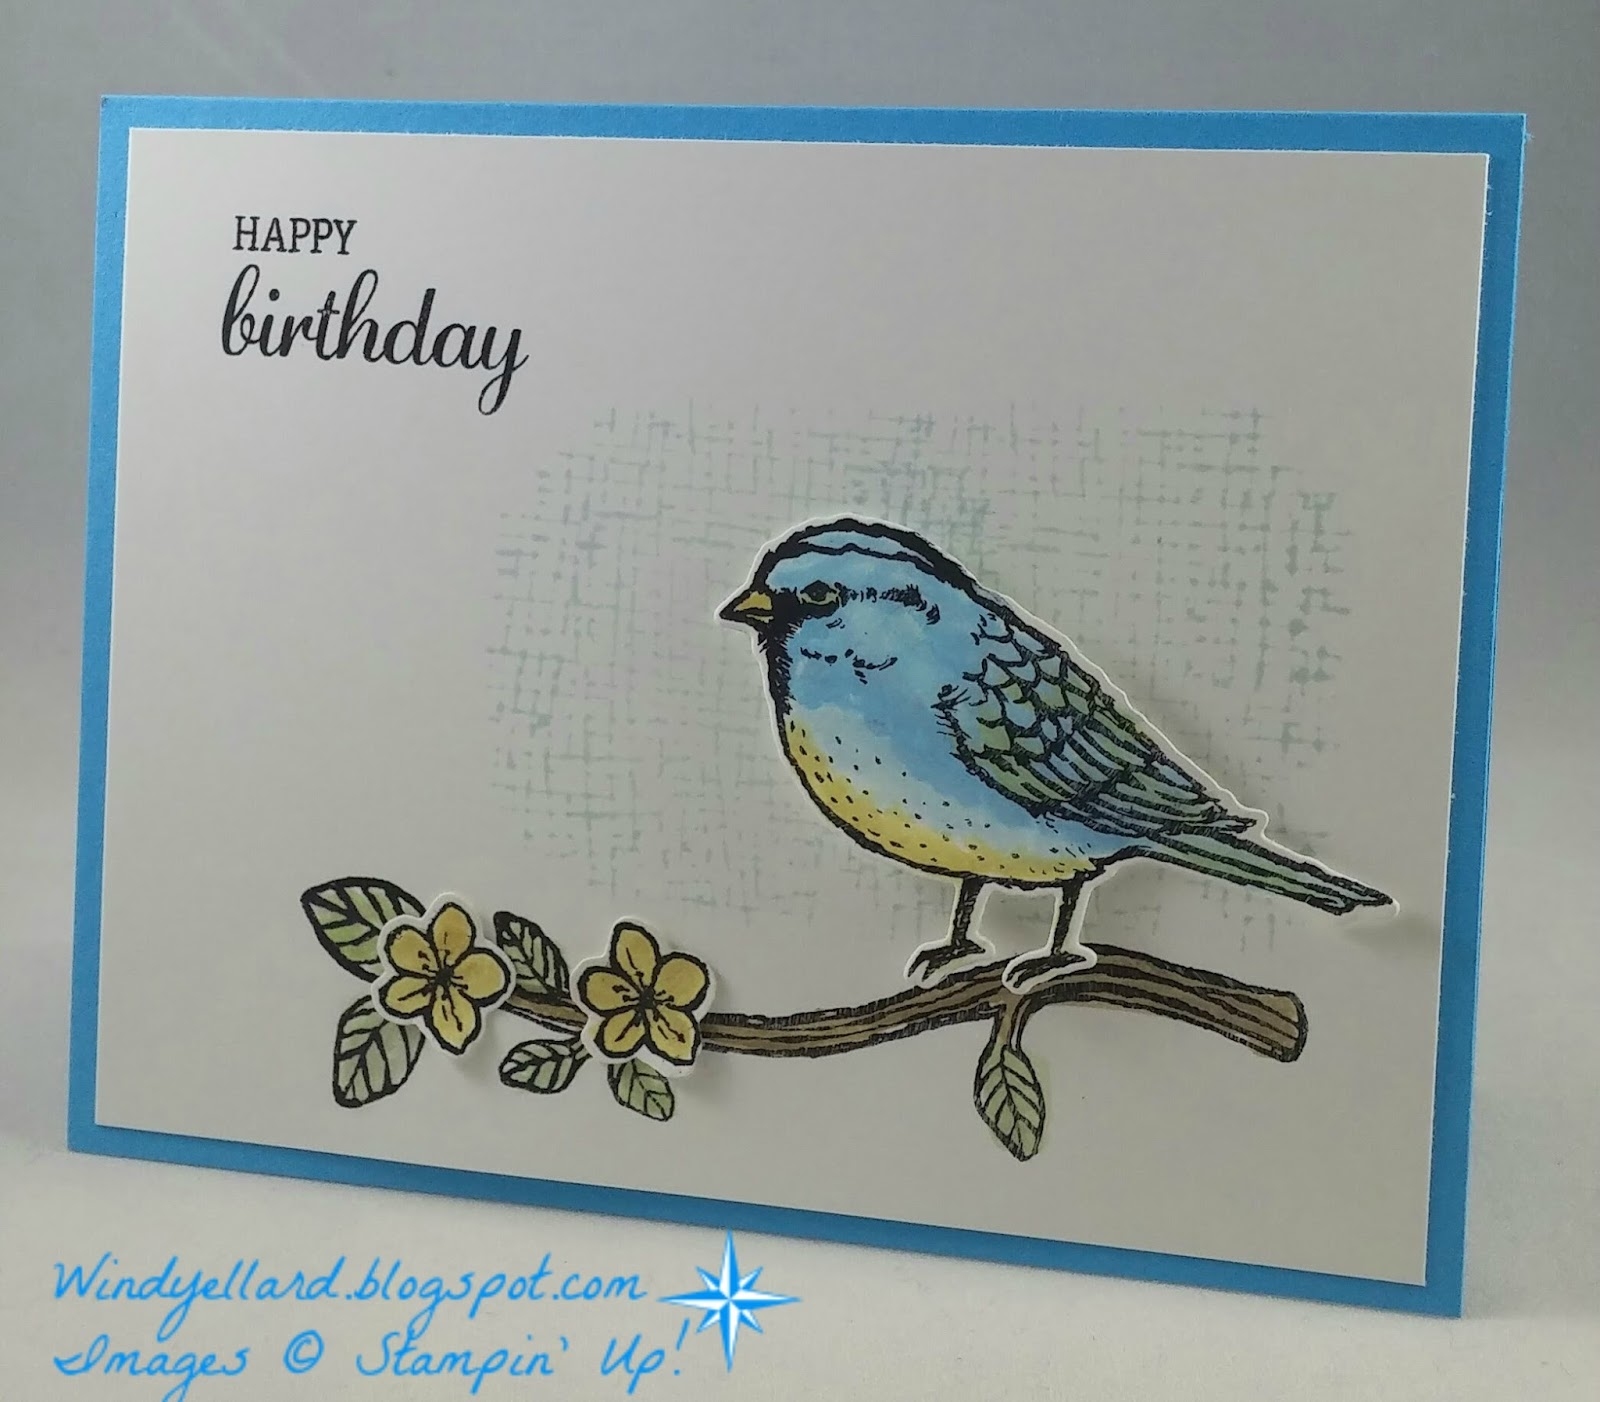 Windys Wonderful Creations Happy Birthday Sweet Blue Bird